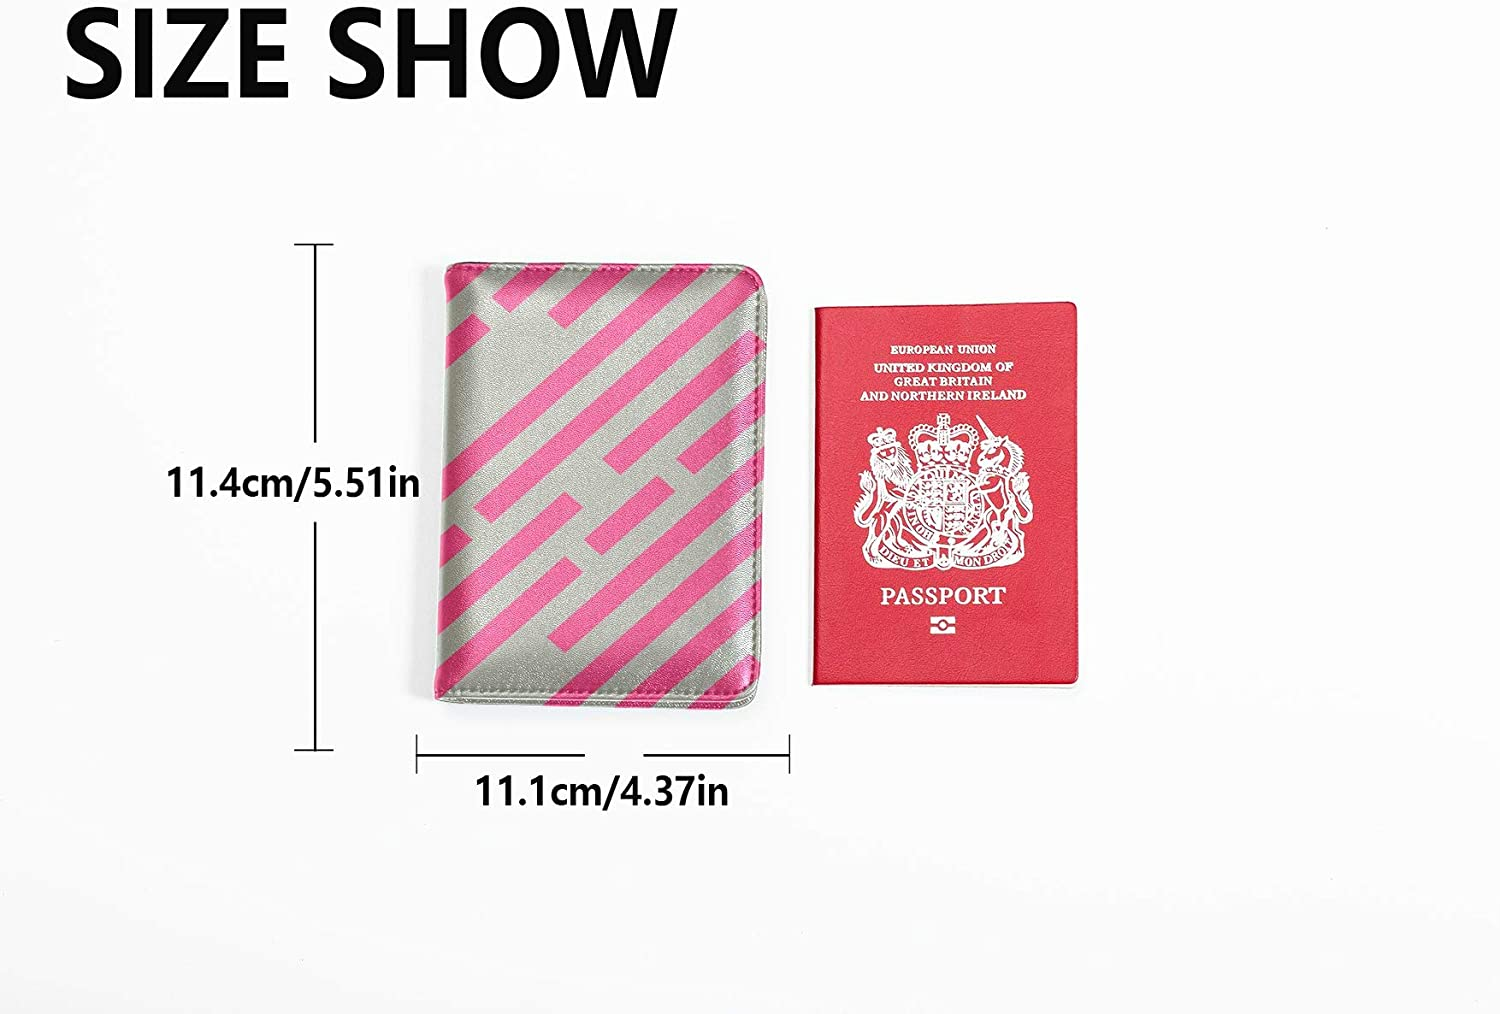 Personalized Passport Holder Case Fashion Creative Household Towel Passport Holder Cover Pack Multi Purpose Print Passport Holder Cover For Men Travel Wallets For Unisex 5.51x4.37 Inch